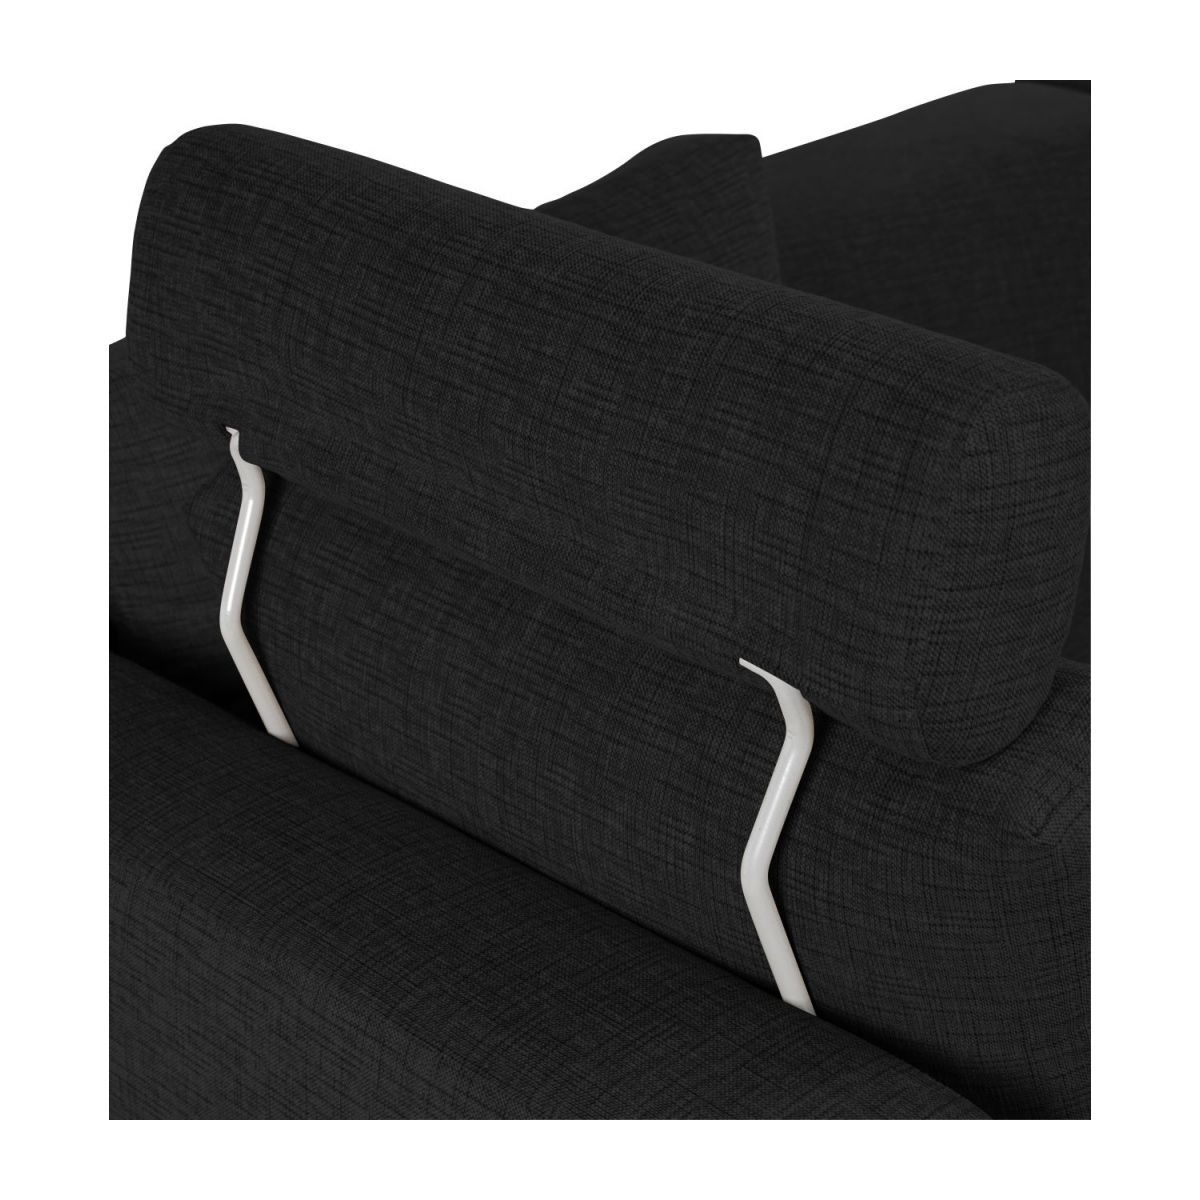 Headrest in Ancio fabric, nero n°4